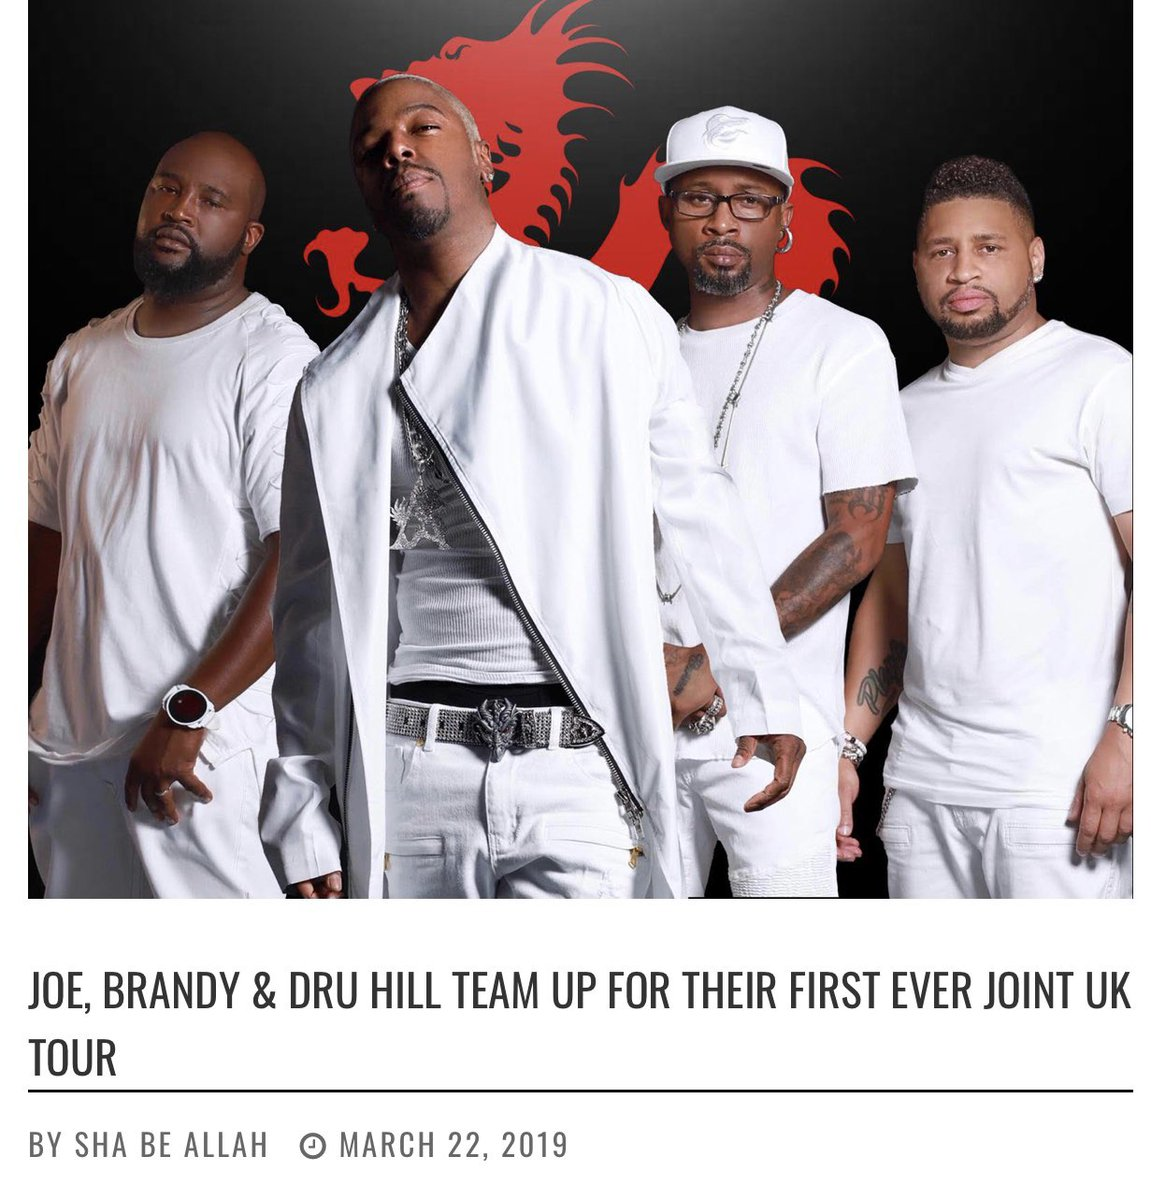 Joe, @4everBrandy @DruHill4Real Team Up for First Ever Joint UK Tour   Via @thesource   #joe #brandy #druhill #hiphop #randb #music #musicnews #tour #tournews #uk #unitedkingdom #thesource